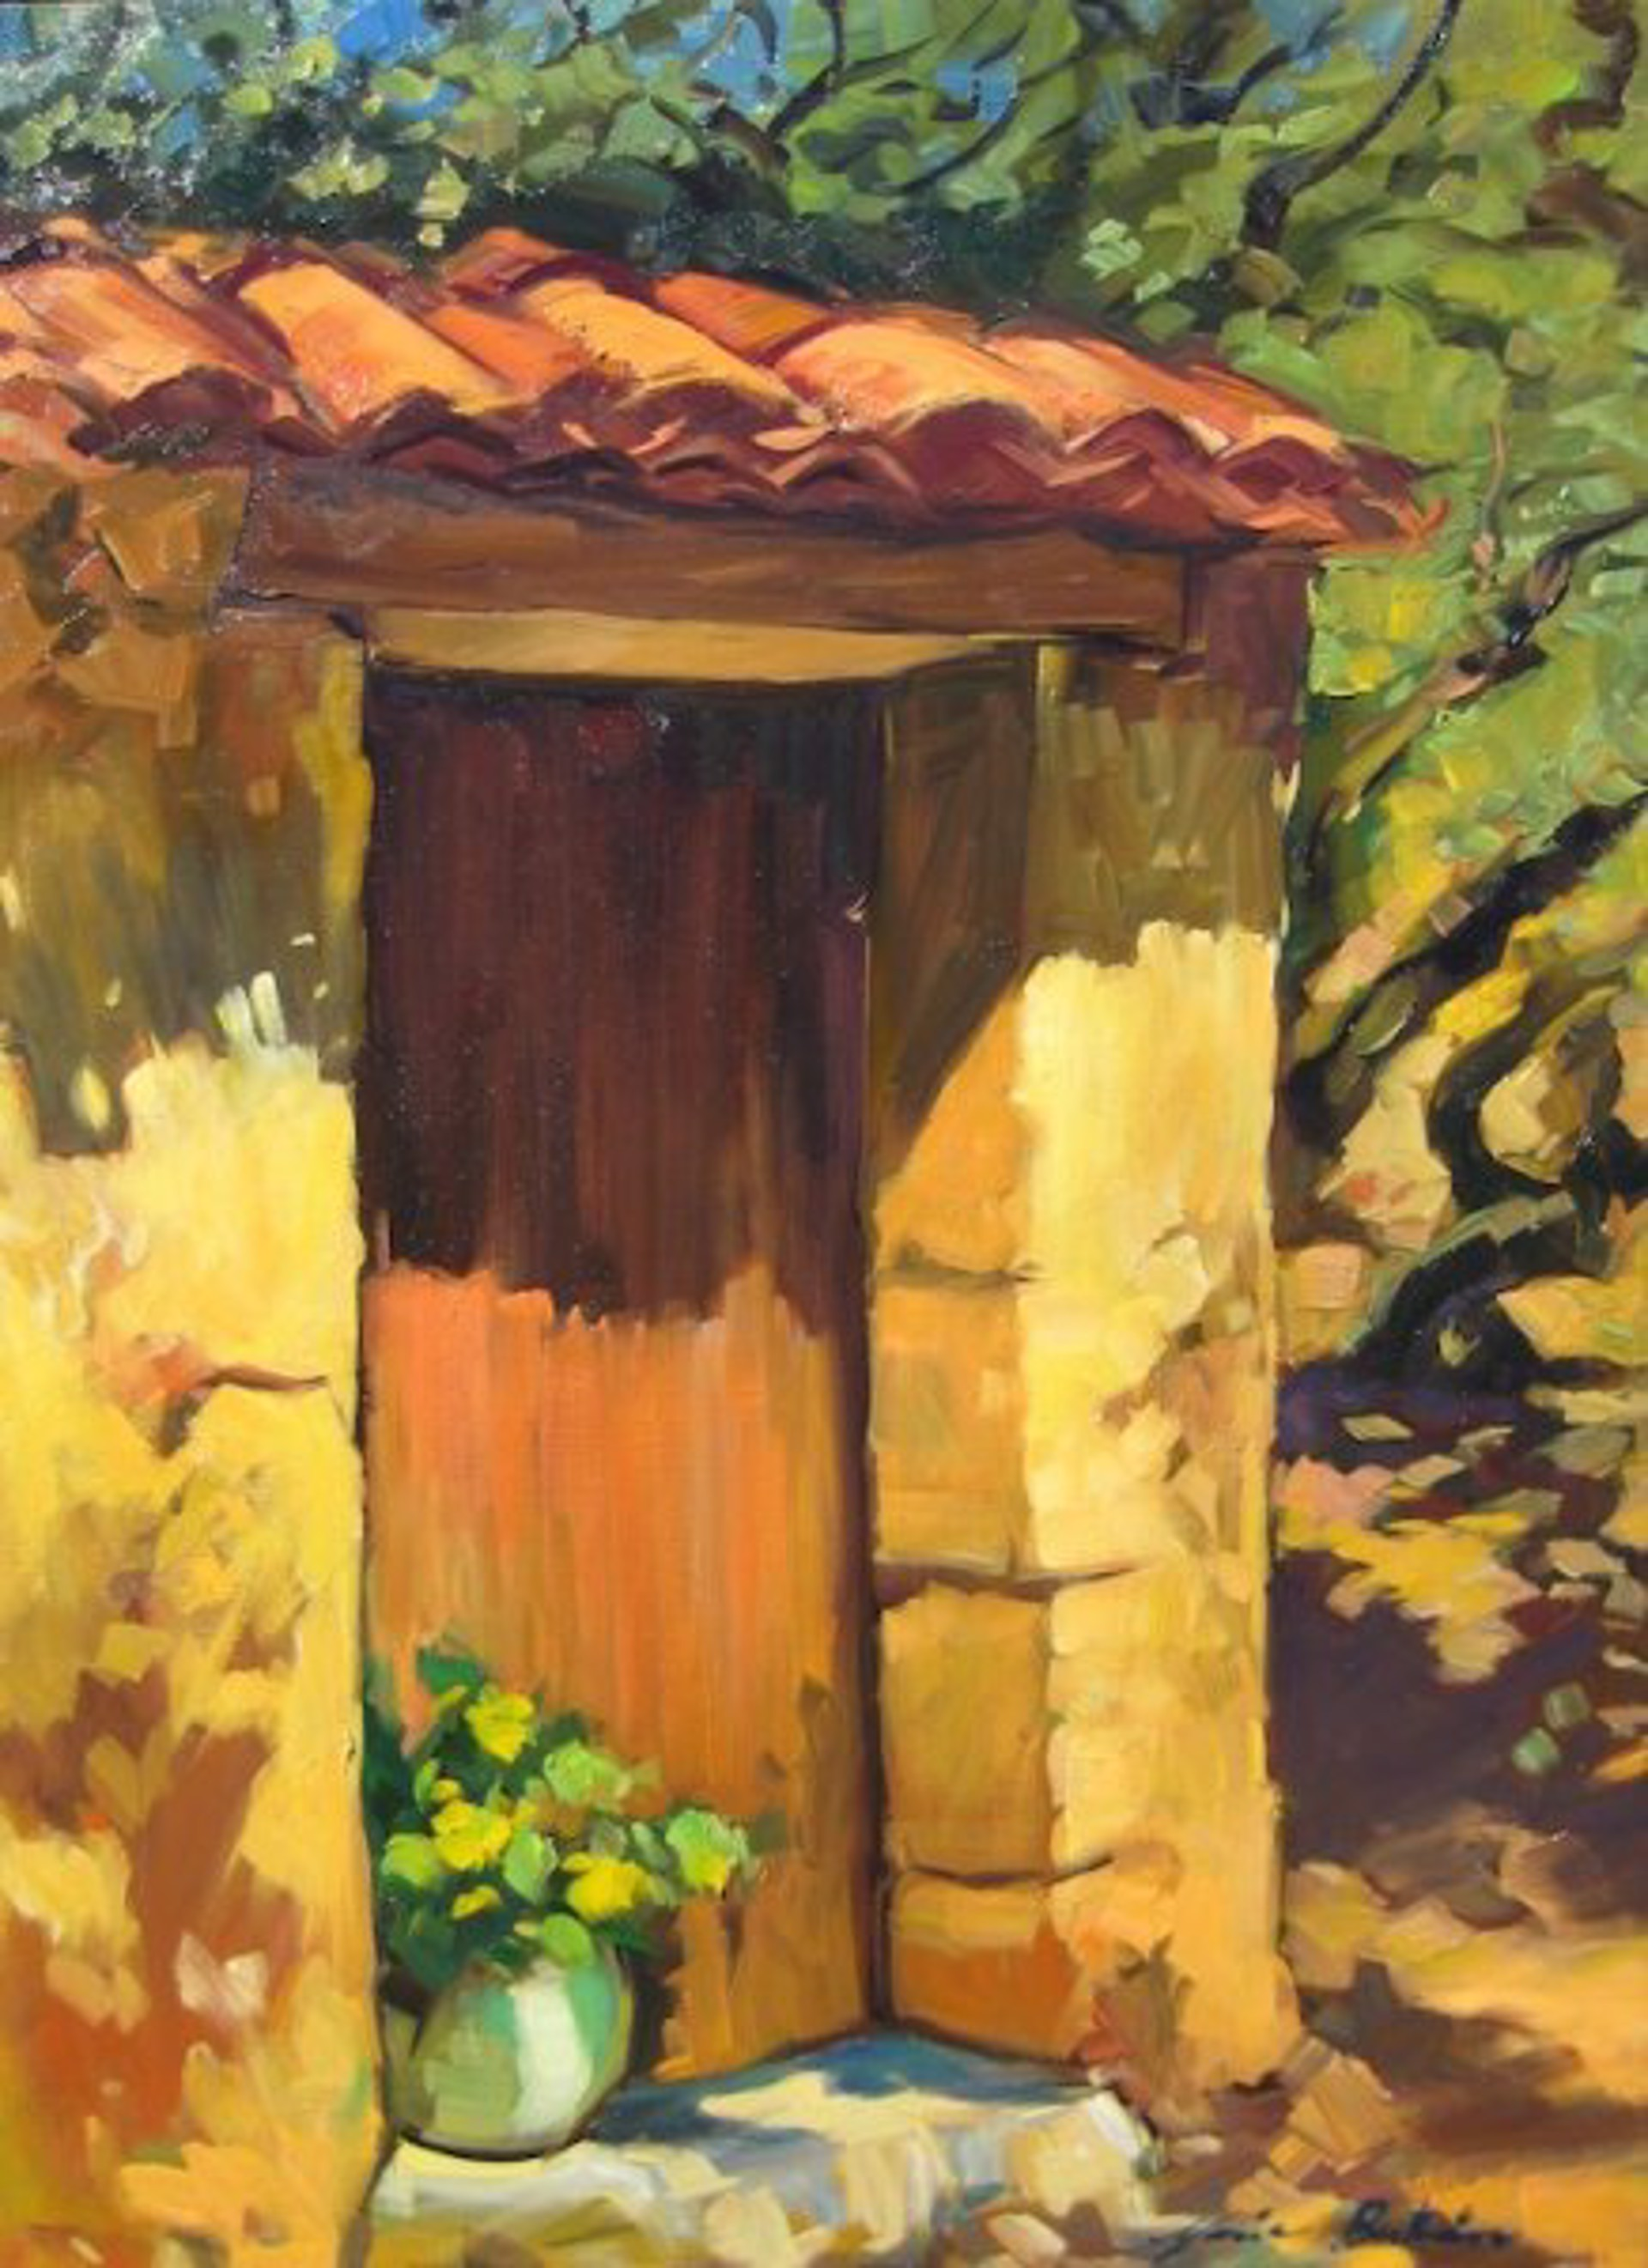 Flowers In The Provencal Doorway by Maria Bertrán